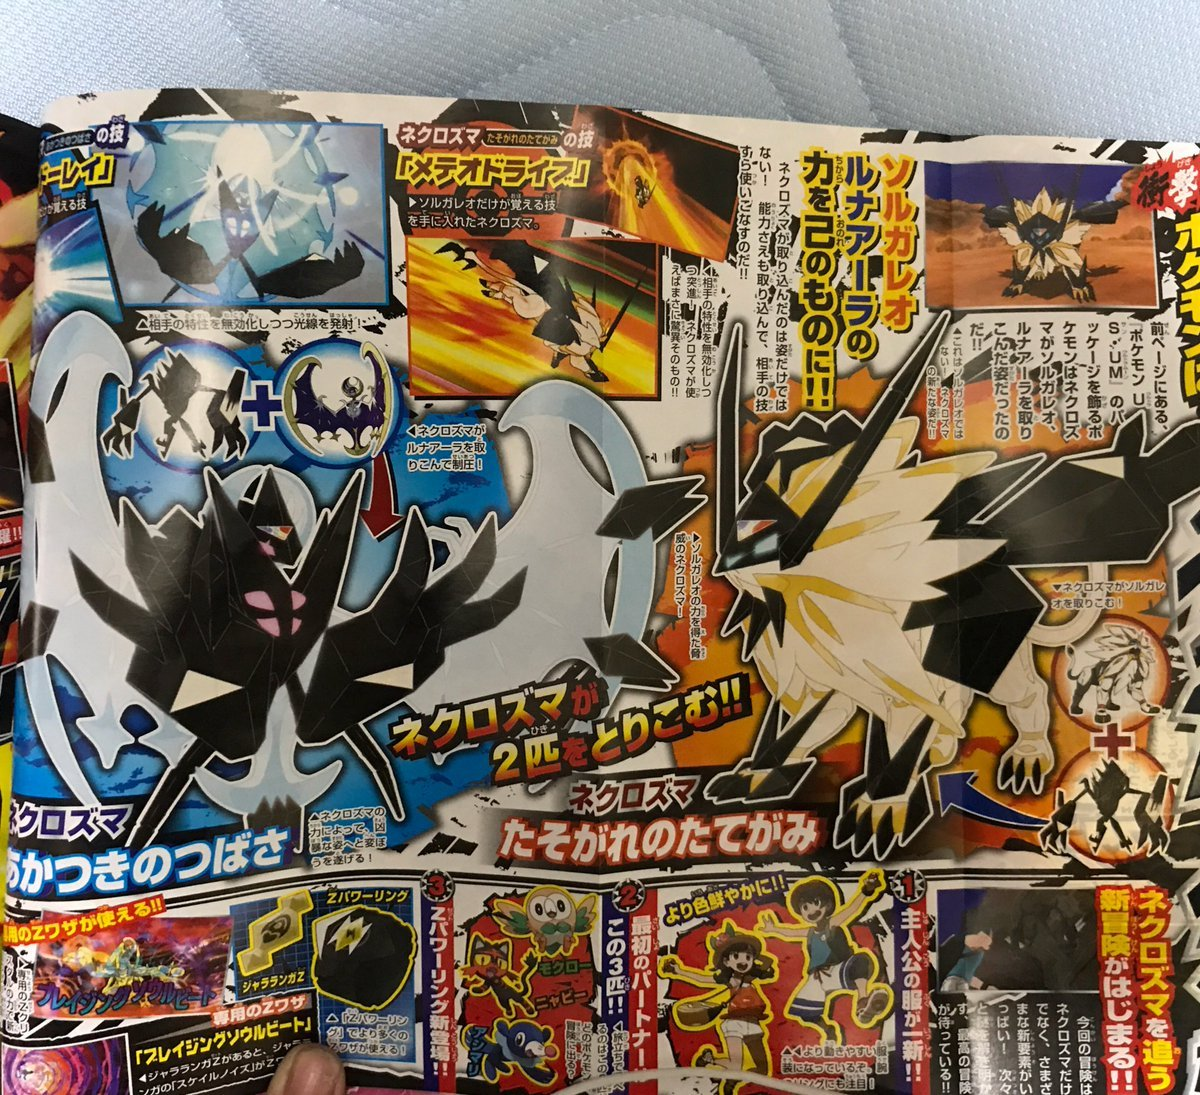 Poknews Sept 12 Round 2 Pokmon Ultra Sun And Moon Pokemon Tournament Dx Us English Nintendo Switch More Details Are Expect To Drop Pretty Soon Either Via Additional Leaks From Corocoro Or The Official Reveal Company But In Mean